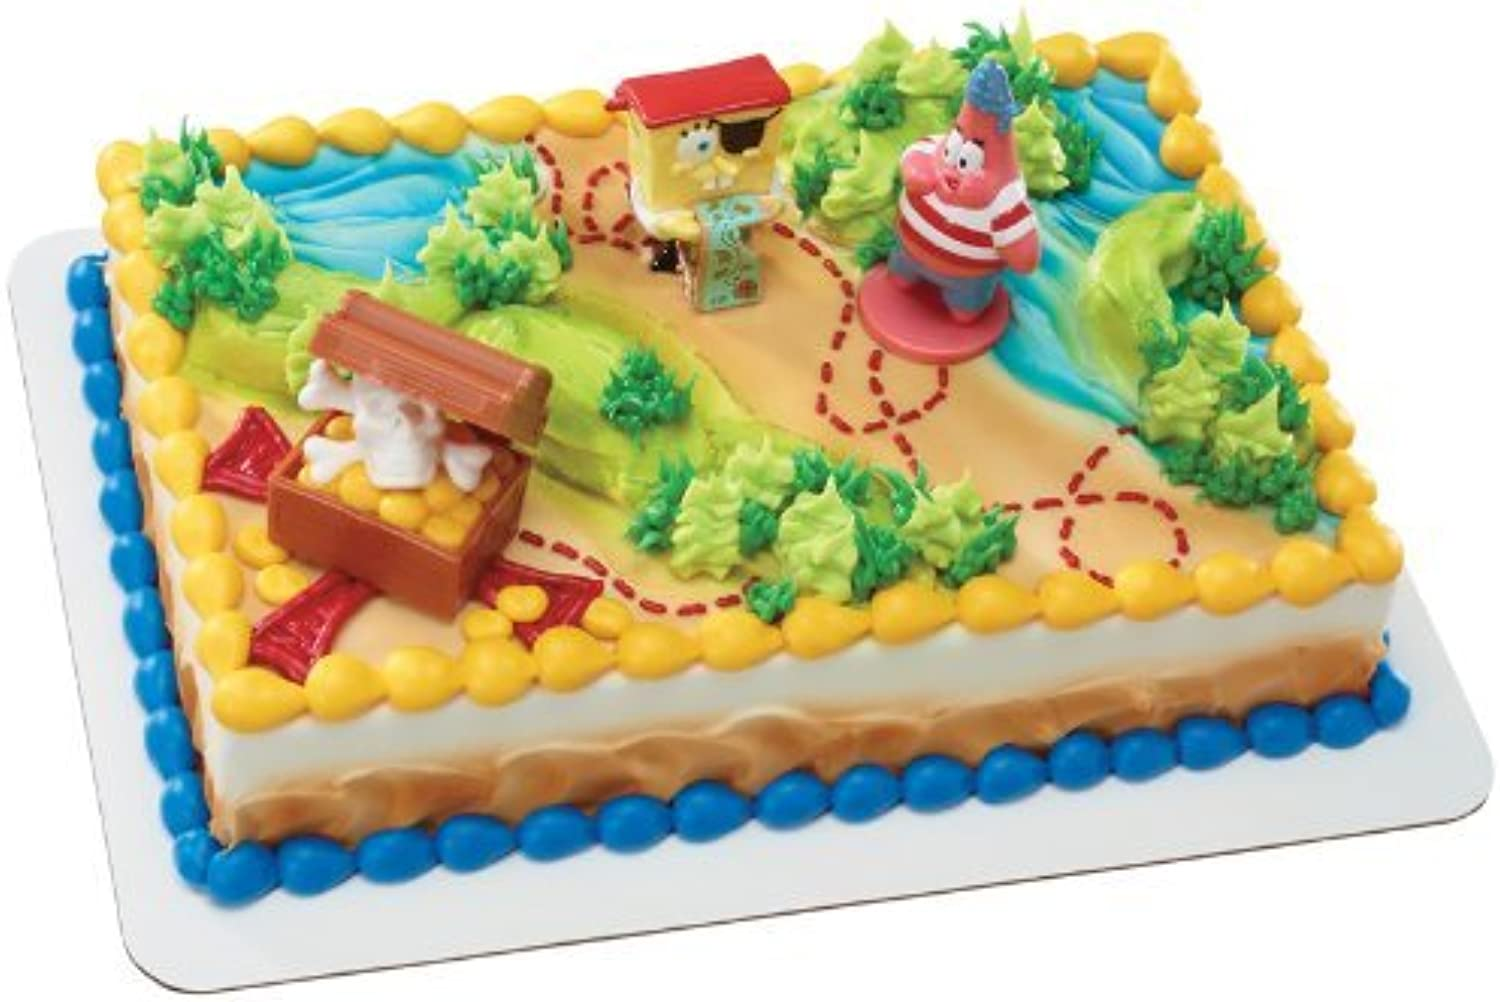 SpongeBob SquarePants Pirates Treasure Hunt DecoSet Cake Topper by SpongeBob SquarePants